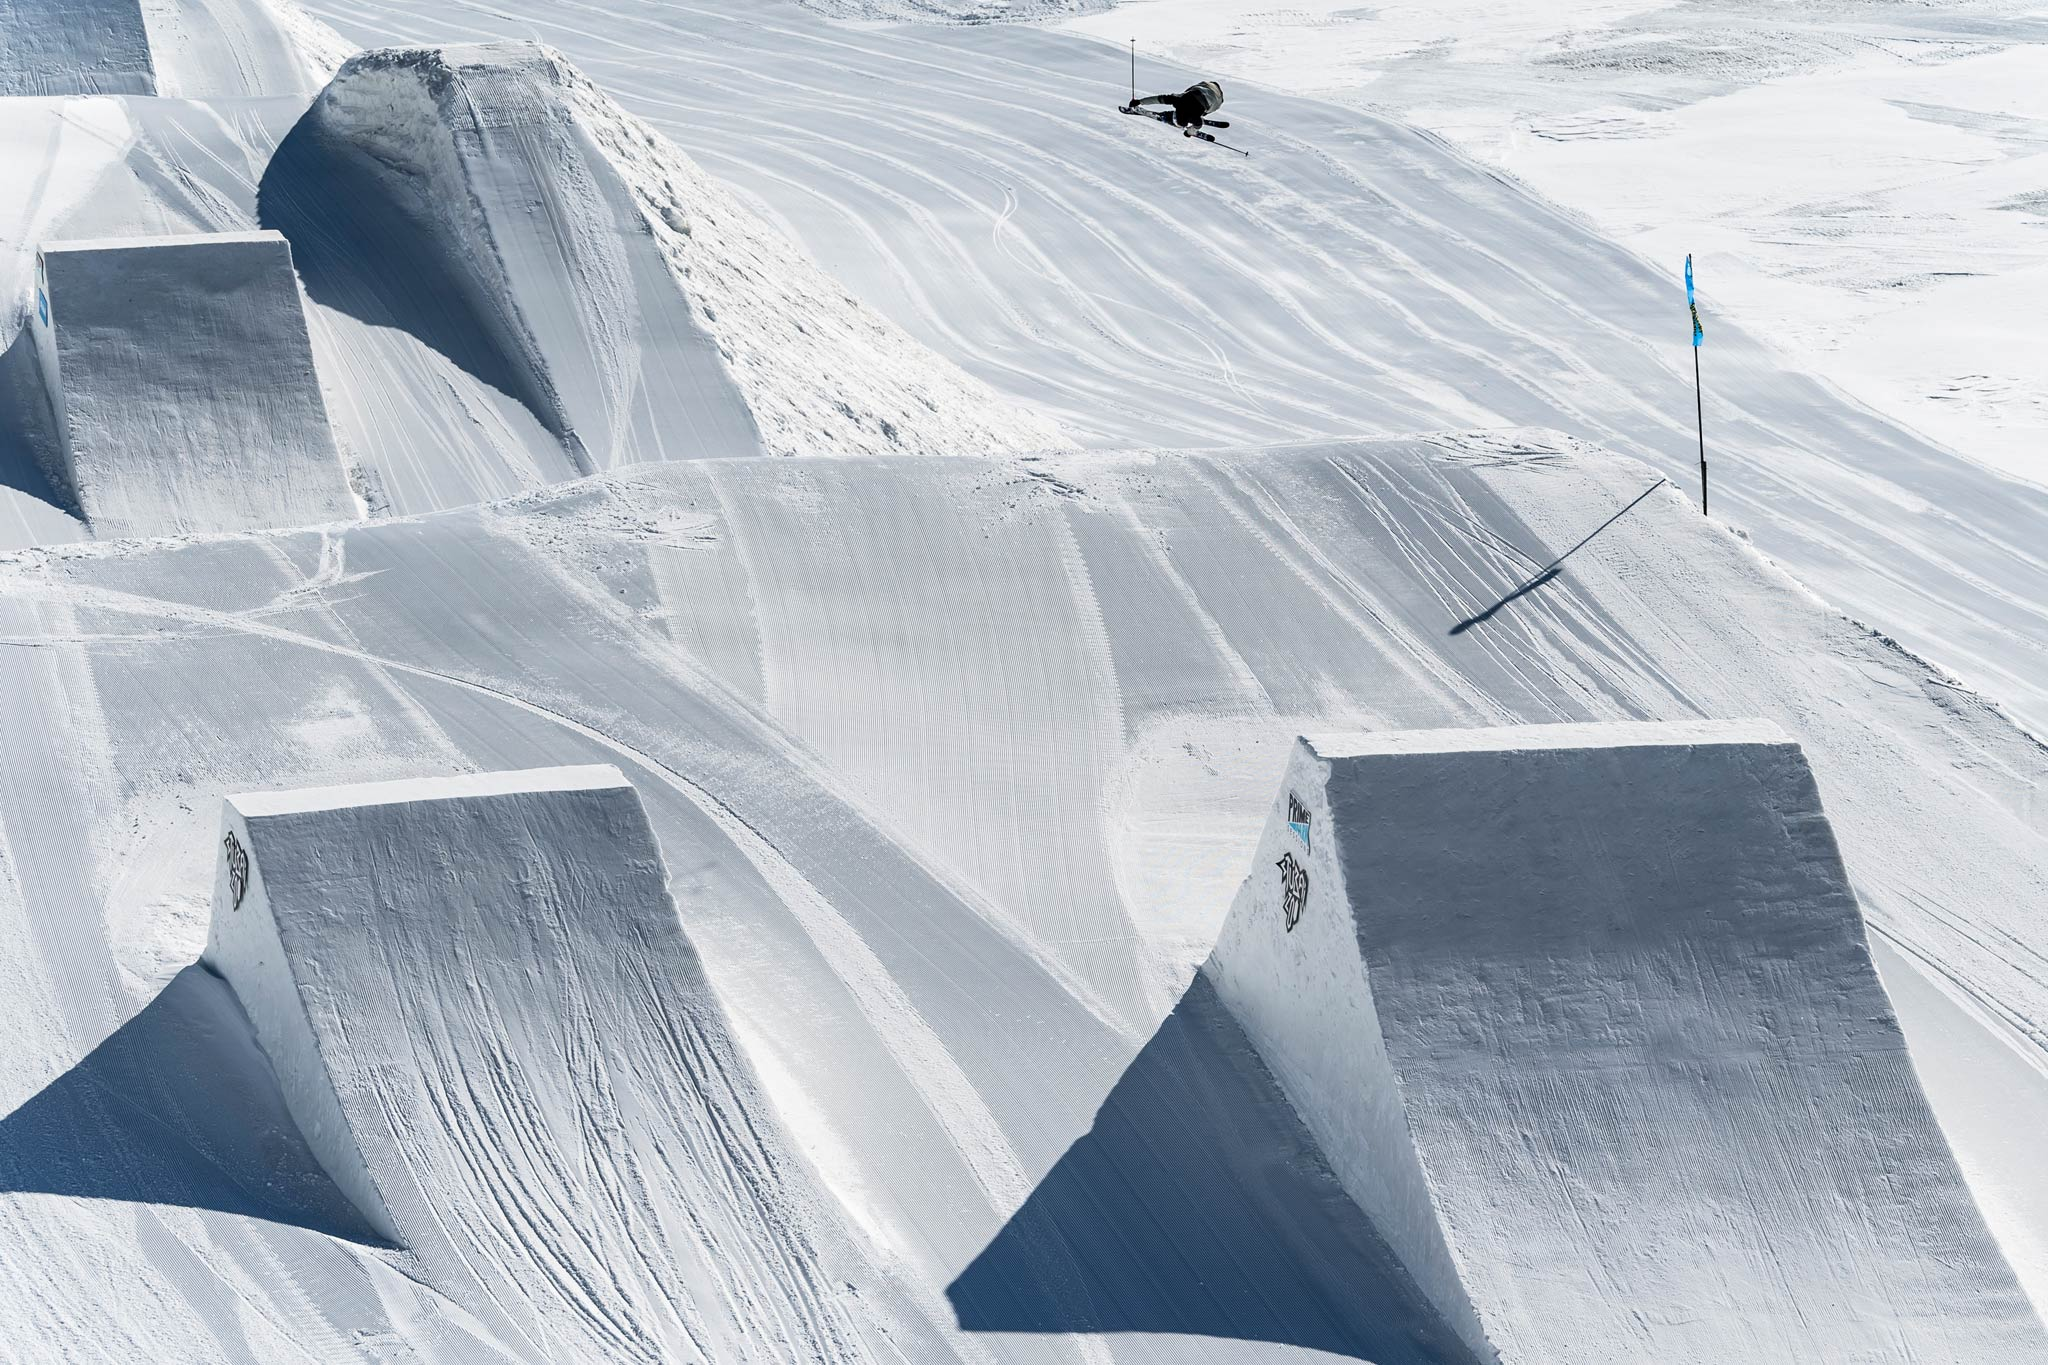 Rider: Bobby Brown - Foto: Pally Learmond